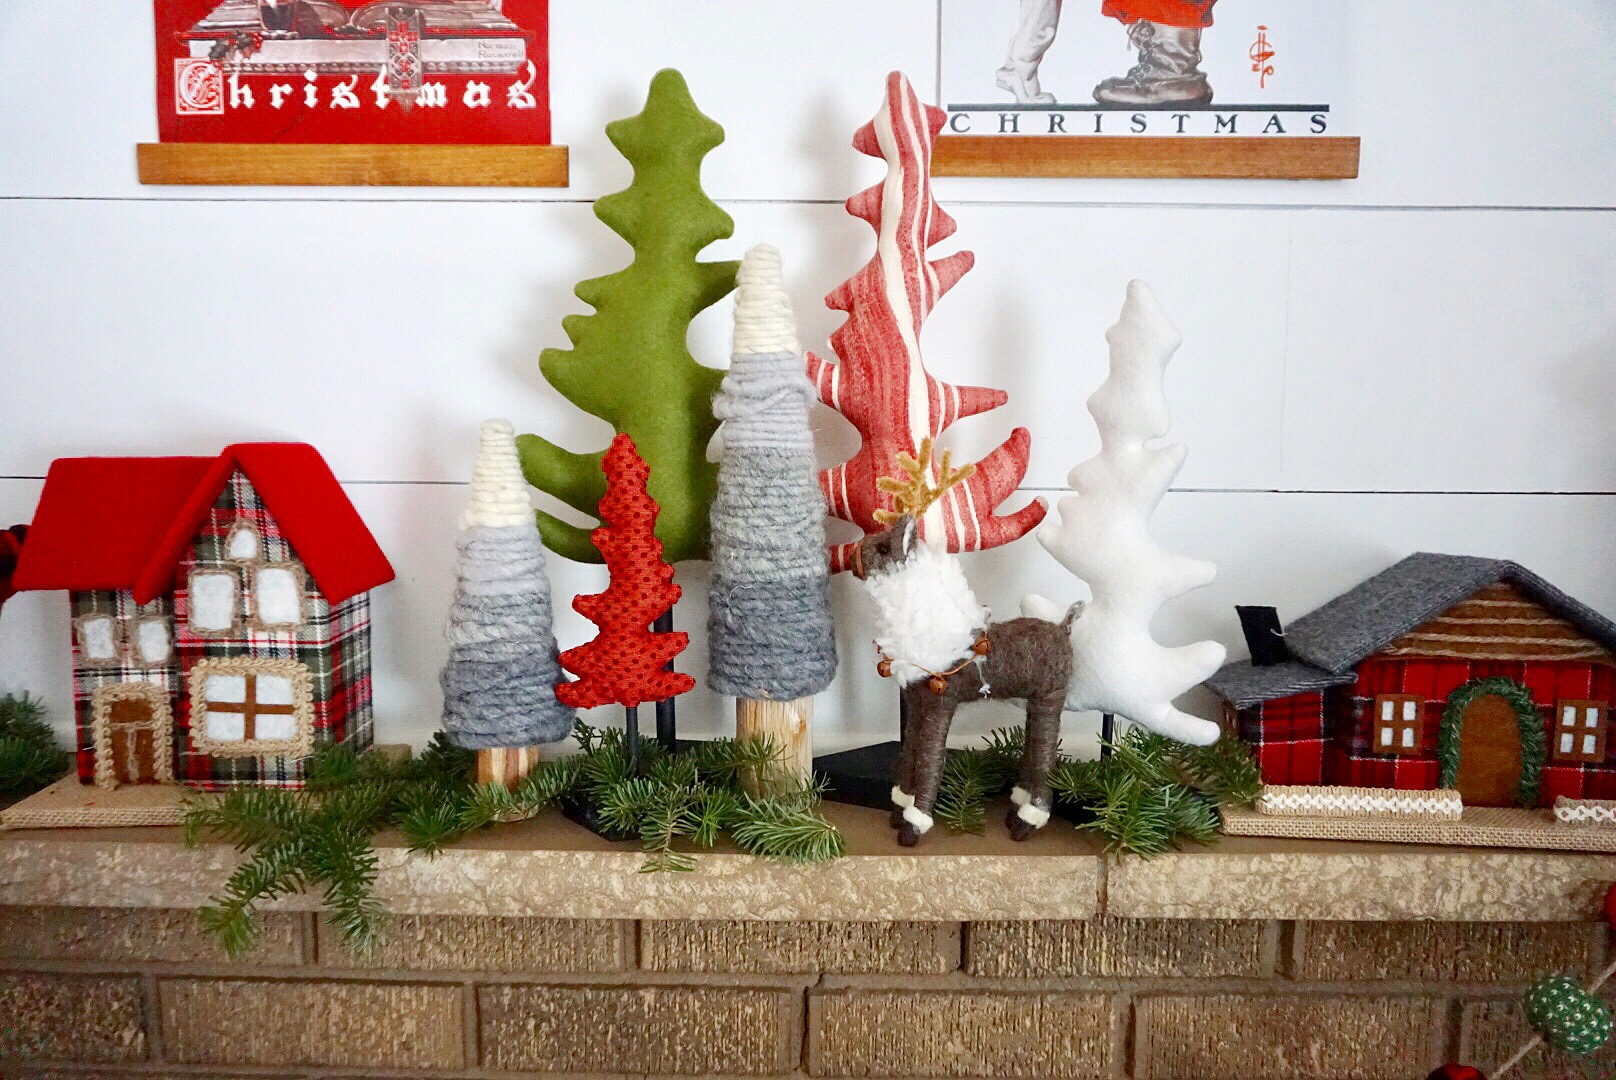 A mixture of whimsical trees, fabric reindeer, and plaid Christmas houses were perfect holiday decorations.